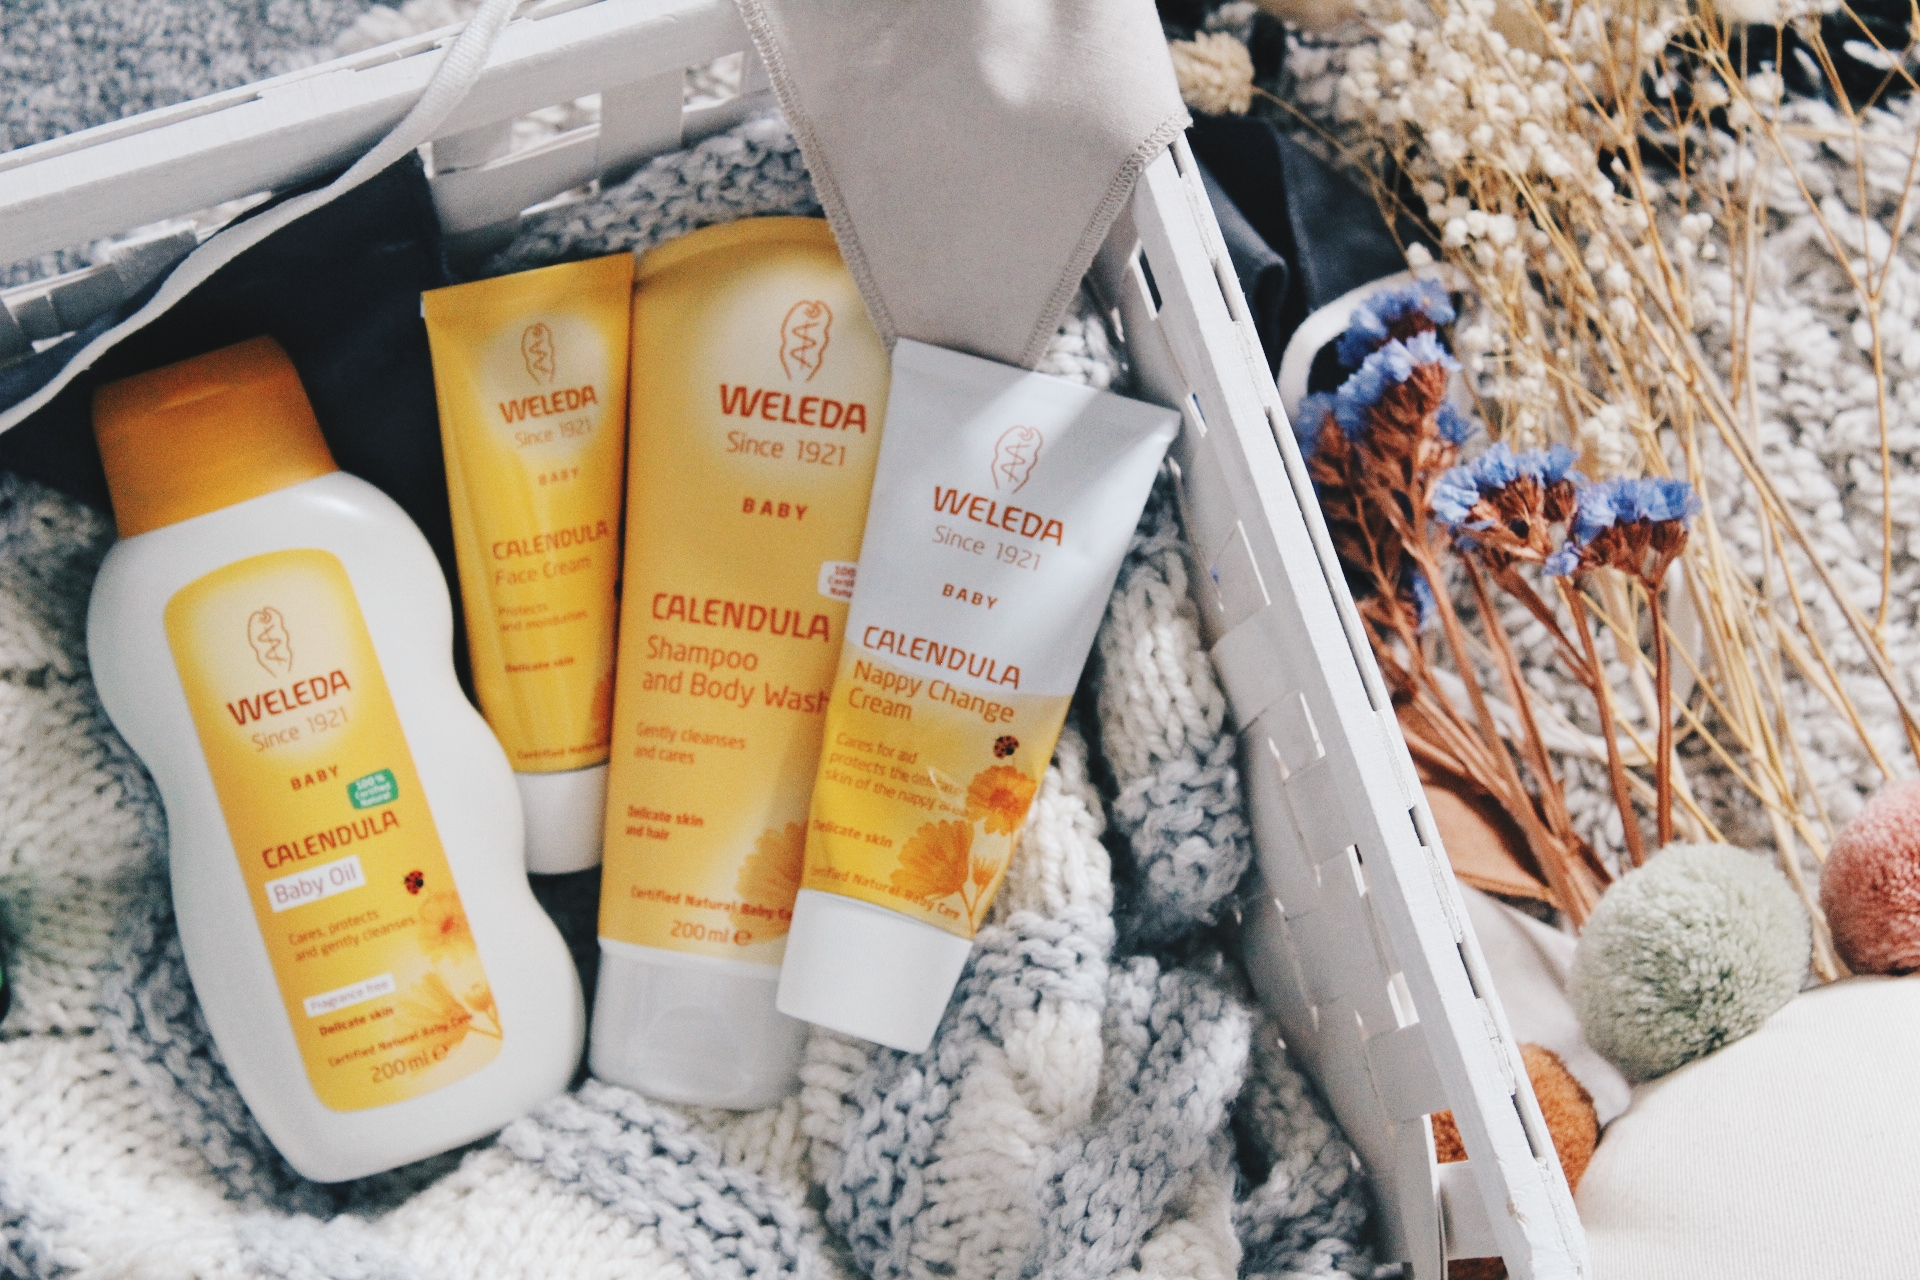 Award-winning skincare for your baby from Weleda